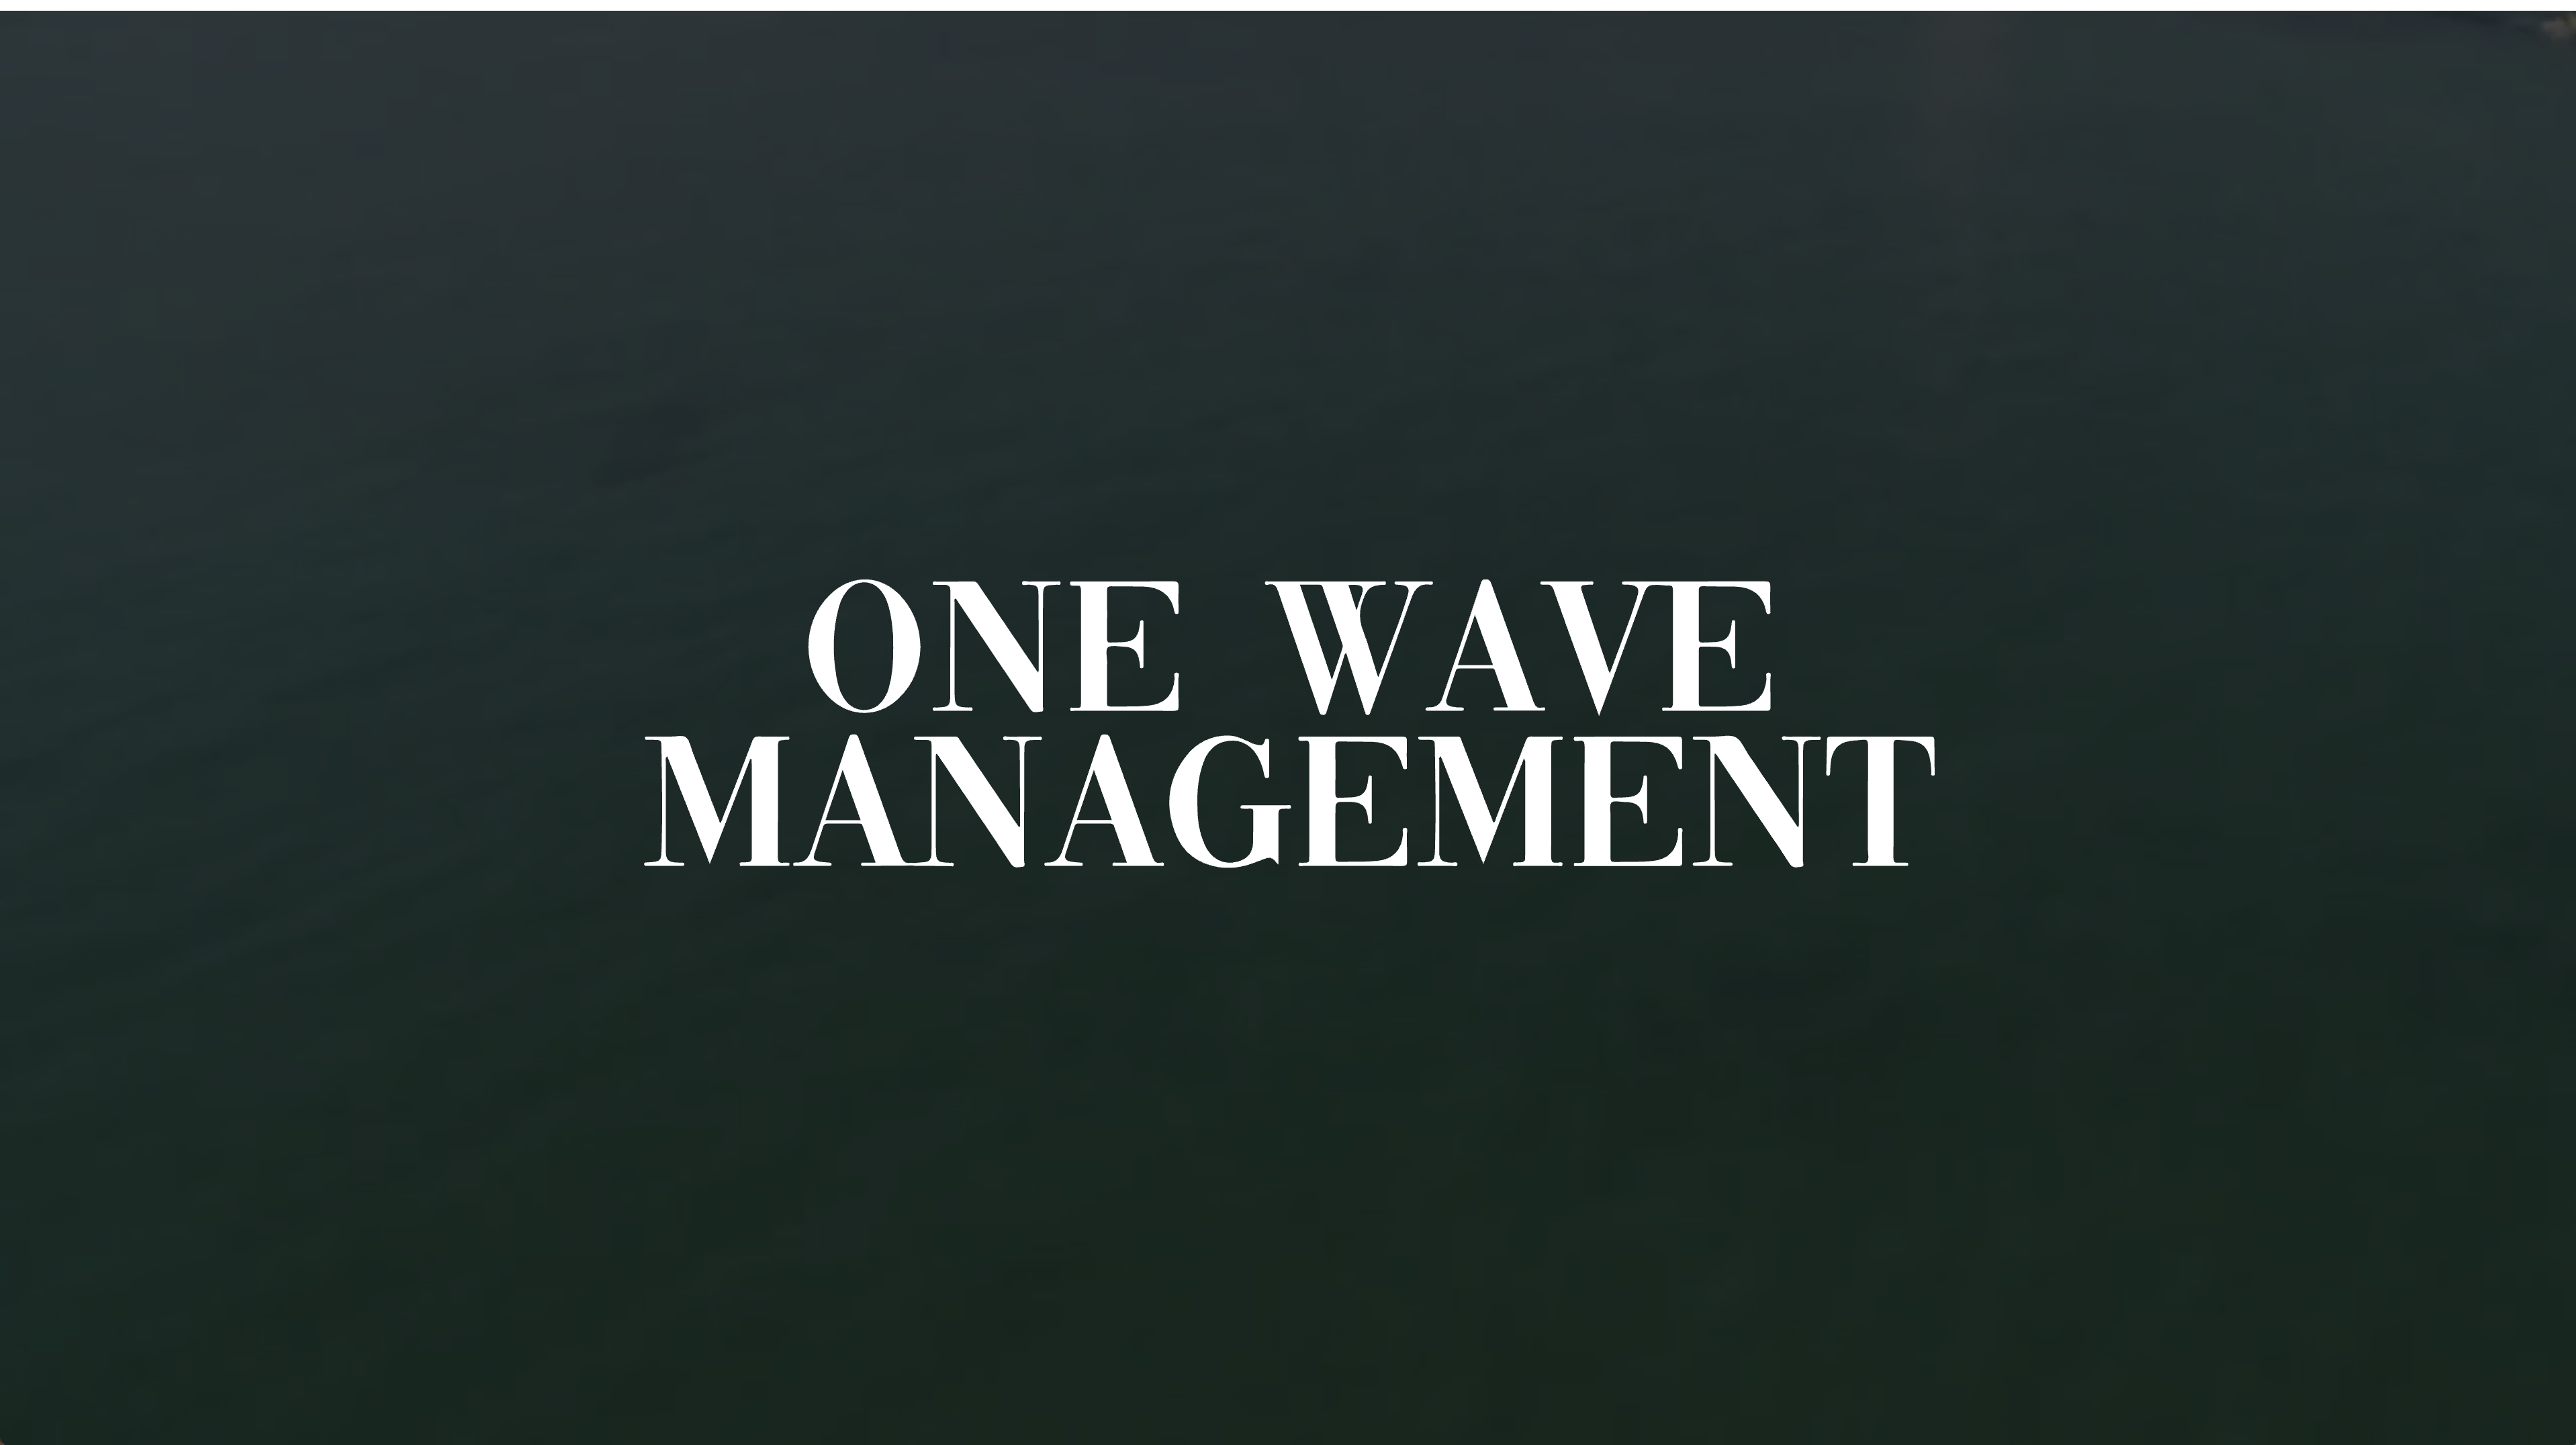 One Wave Management